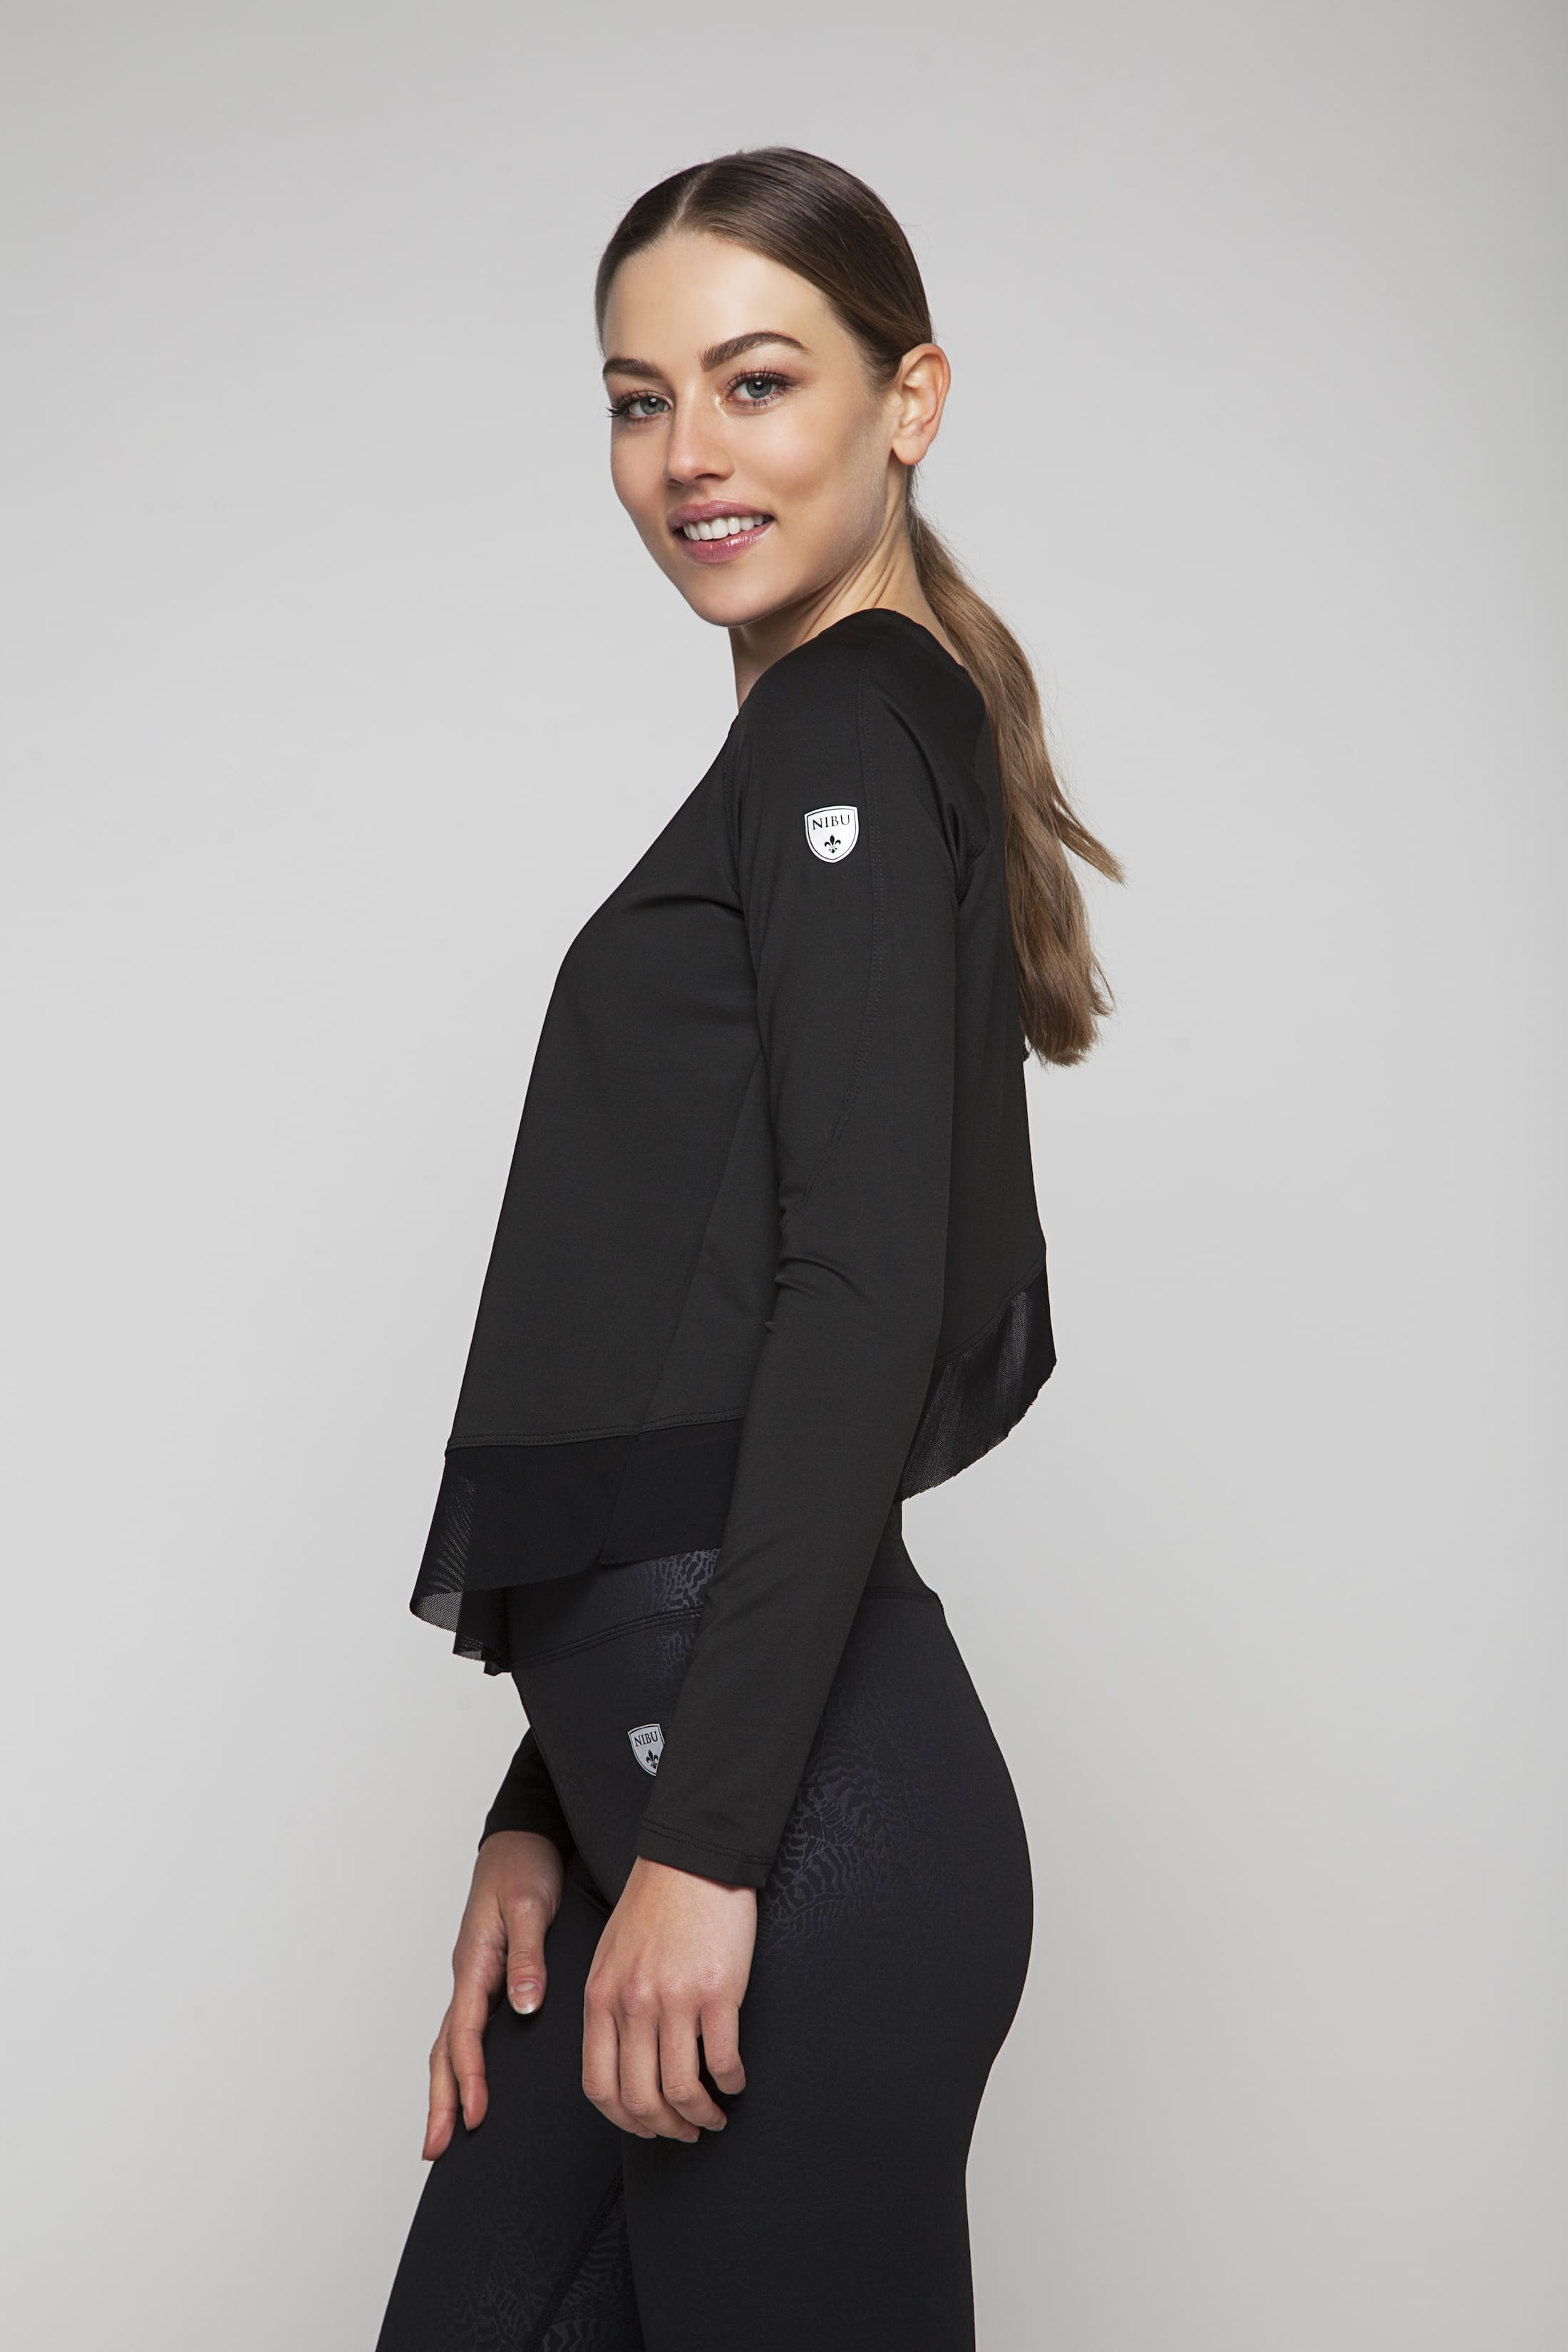 Black soft training shirt with cross-over back